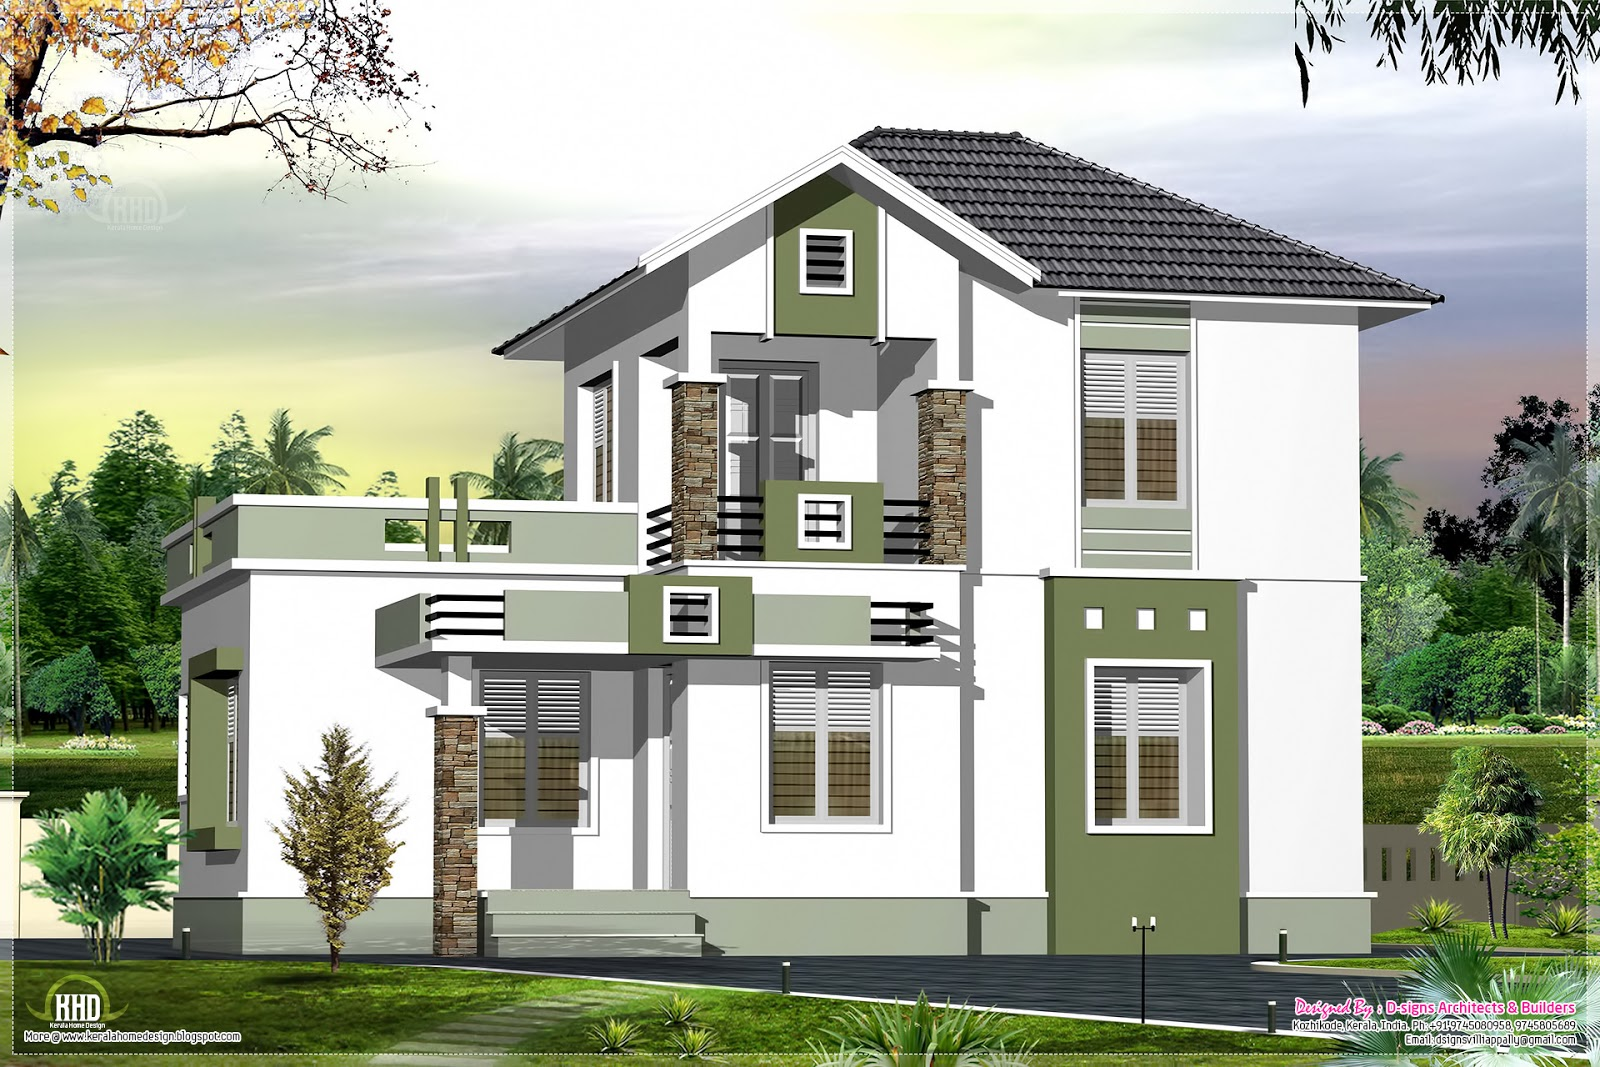 Small double floor home design in 1200 kerala House plans indian style in 1200 sq ft